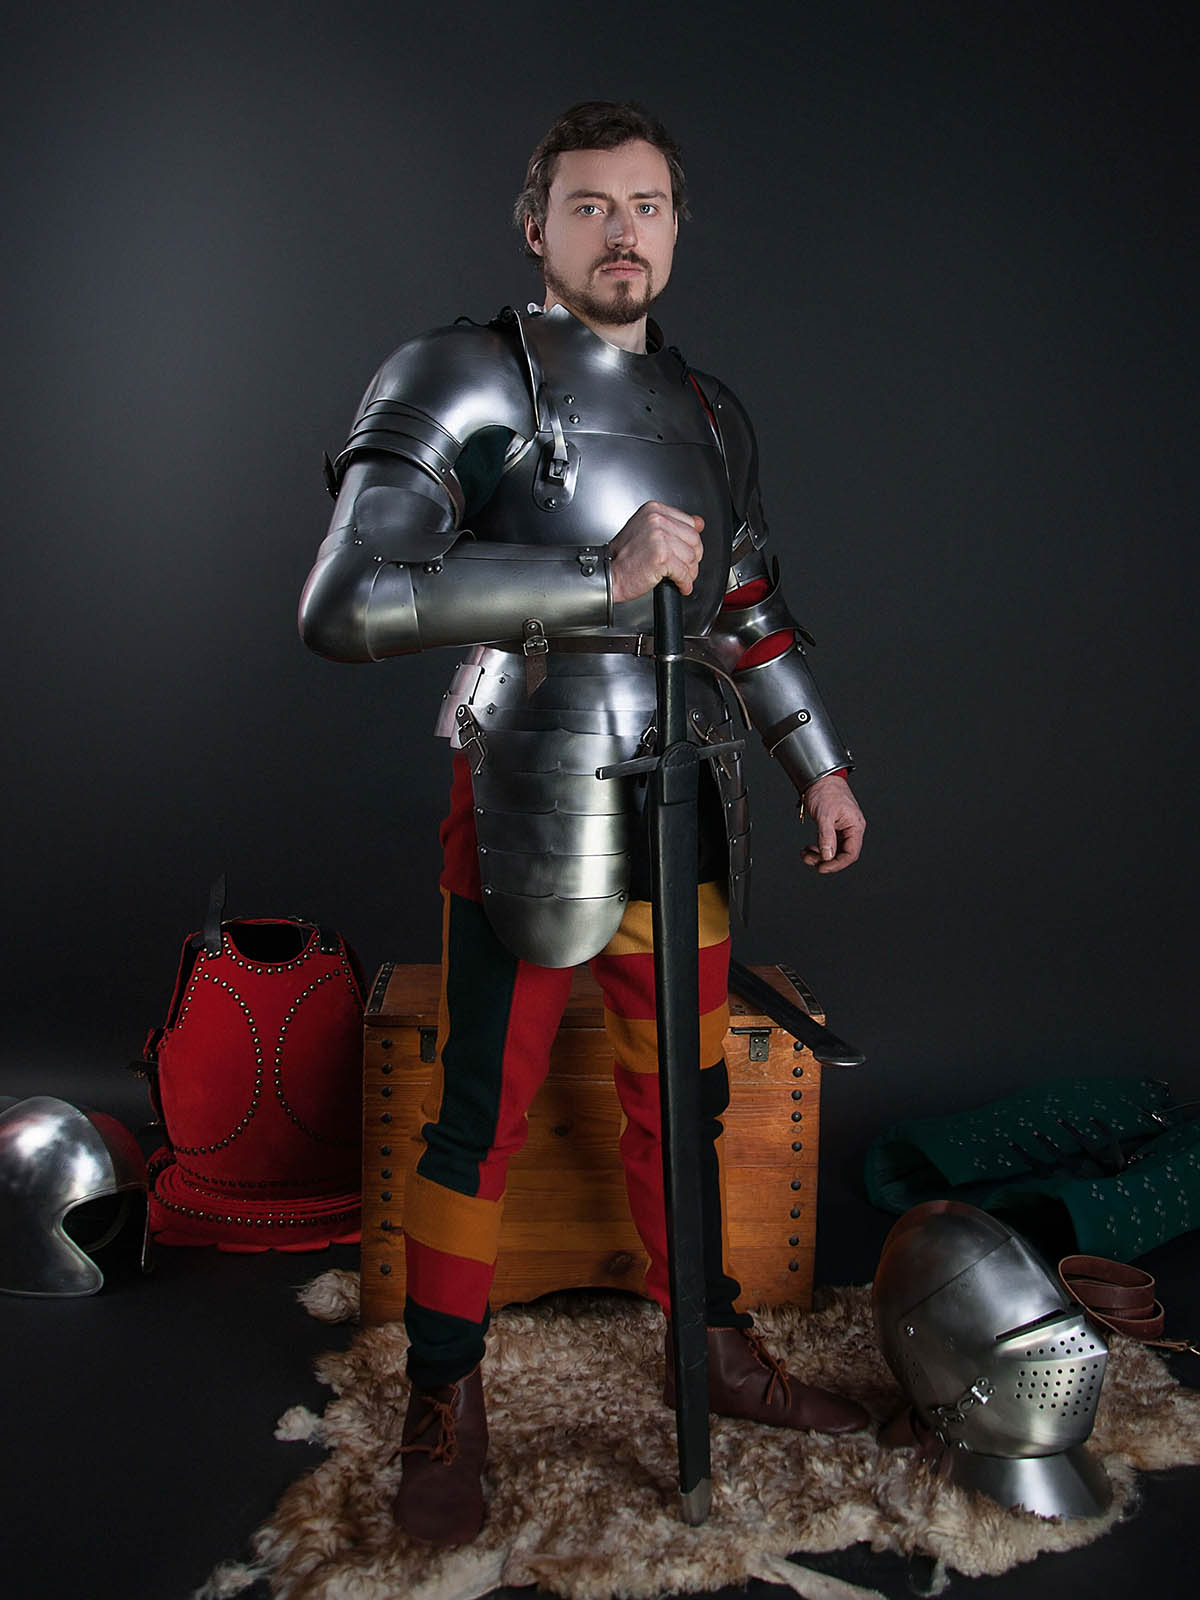 Jousting knight armor, jousting equipment, jousting outfit ...